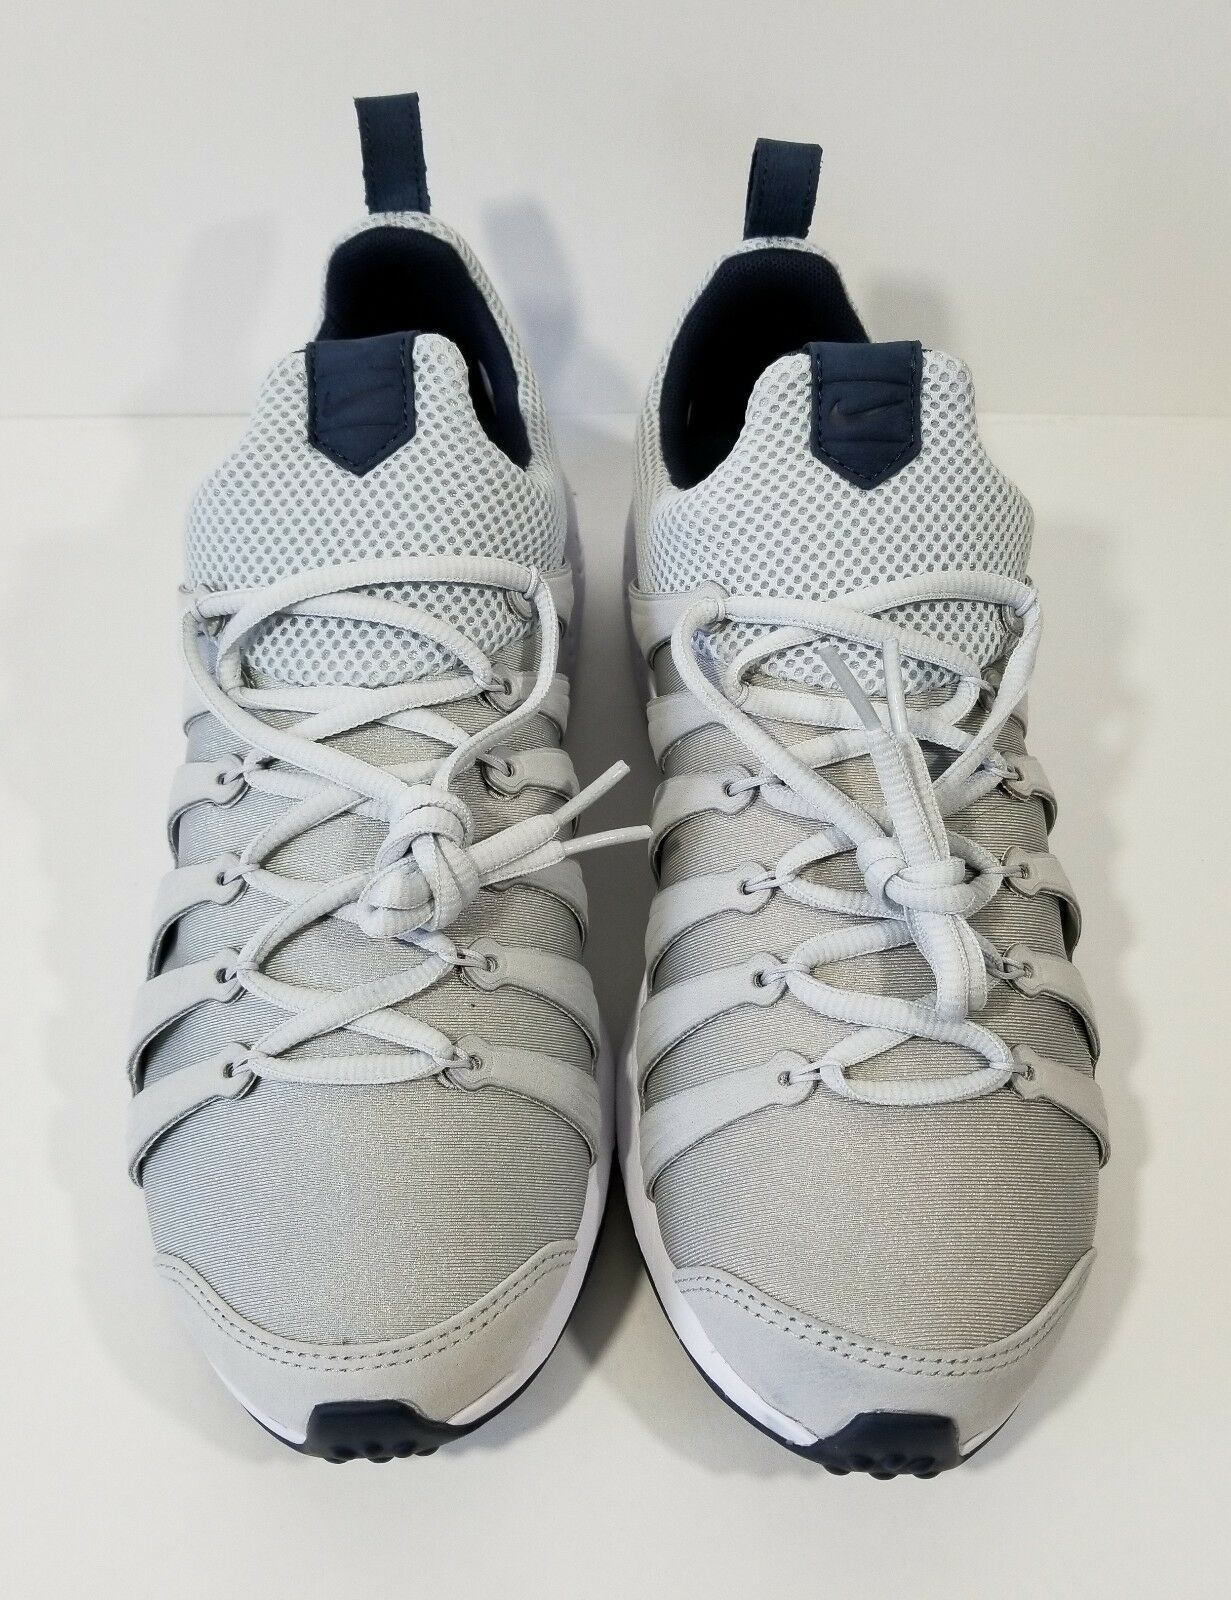 buy popular 56356 297dd ... Nike Air Zoom Spirimic Mens Running Shoes Shoes Shoes Grey White Size  10 df4439 ...